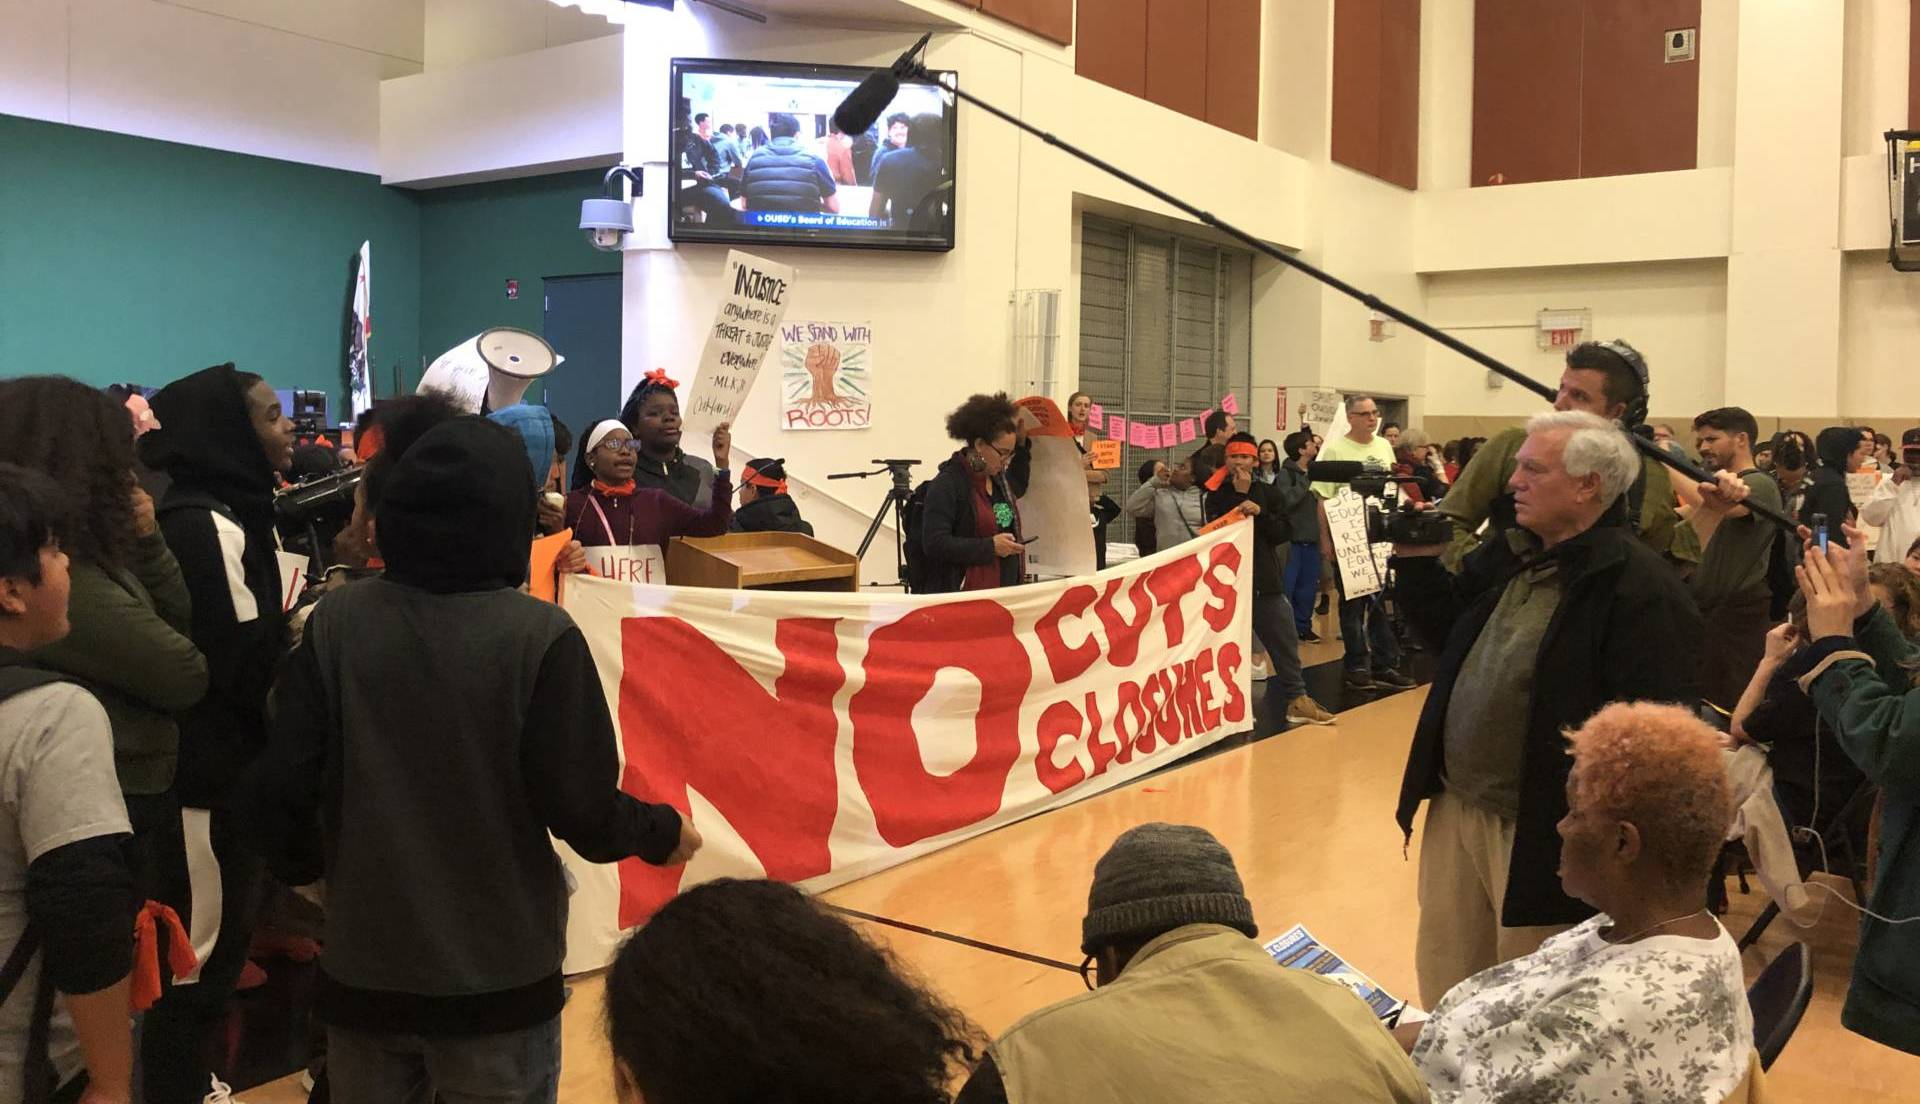 Demonstrators at an OUSD board meeting on Jan. 23, 2019, at La Escuelita Elementary School voiced their opposition to the district's proposal to close Roots International Academy, a small middle school in East Oakland. Julia McEvoy/KQED